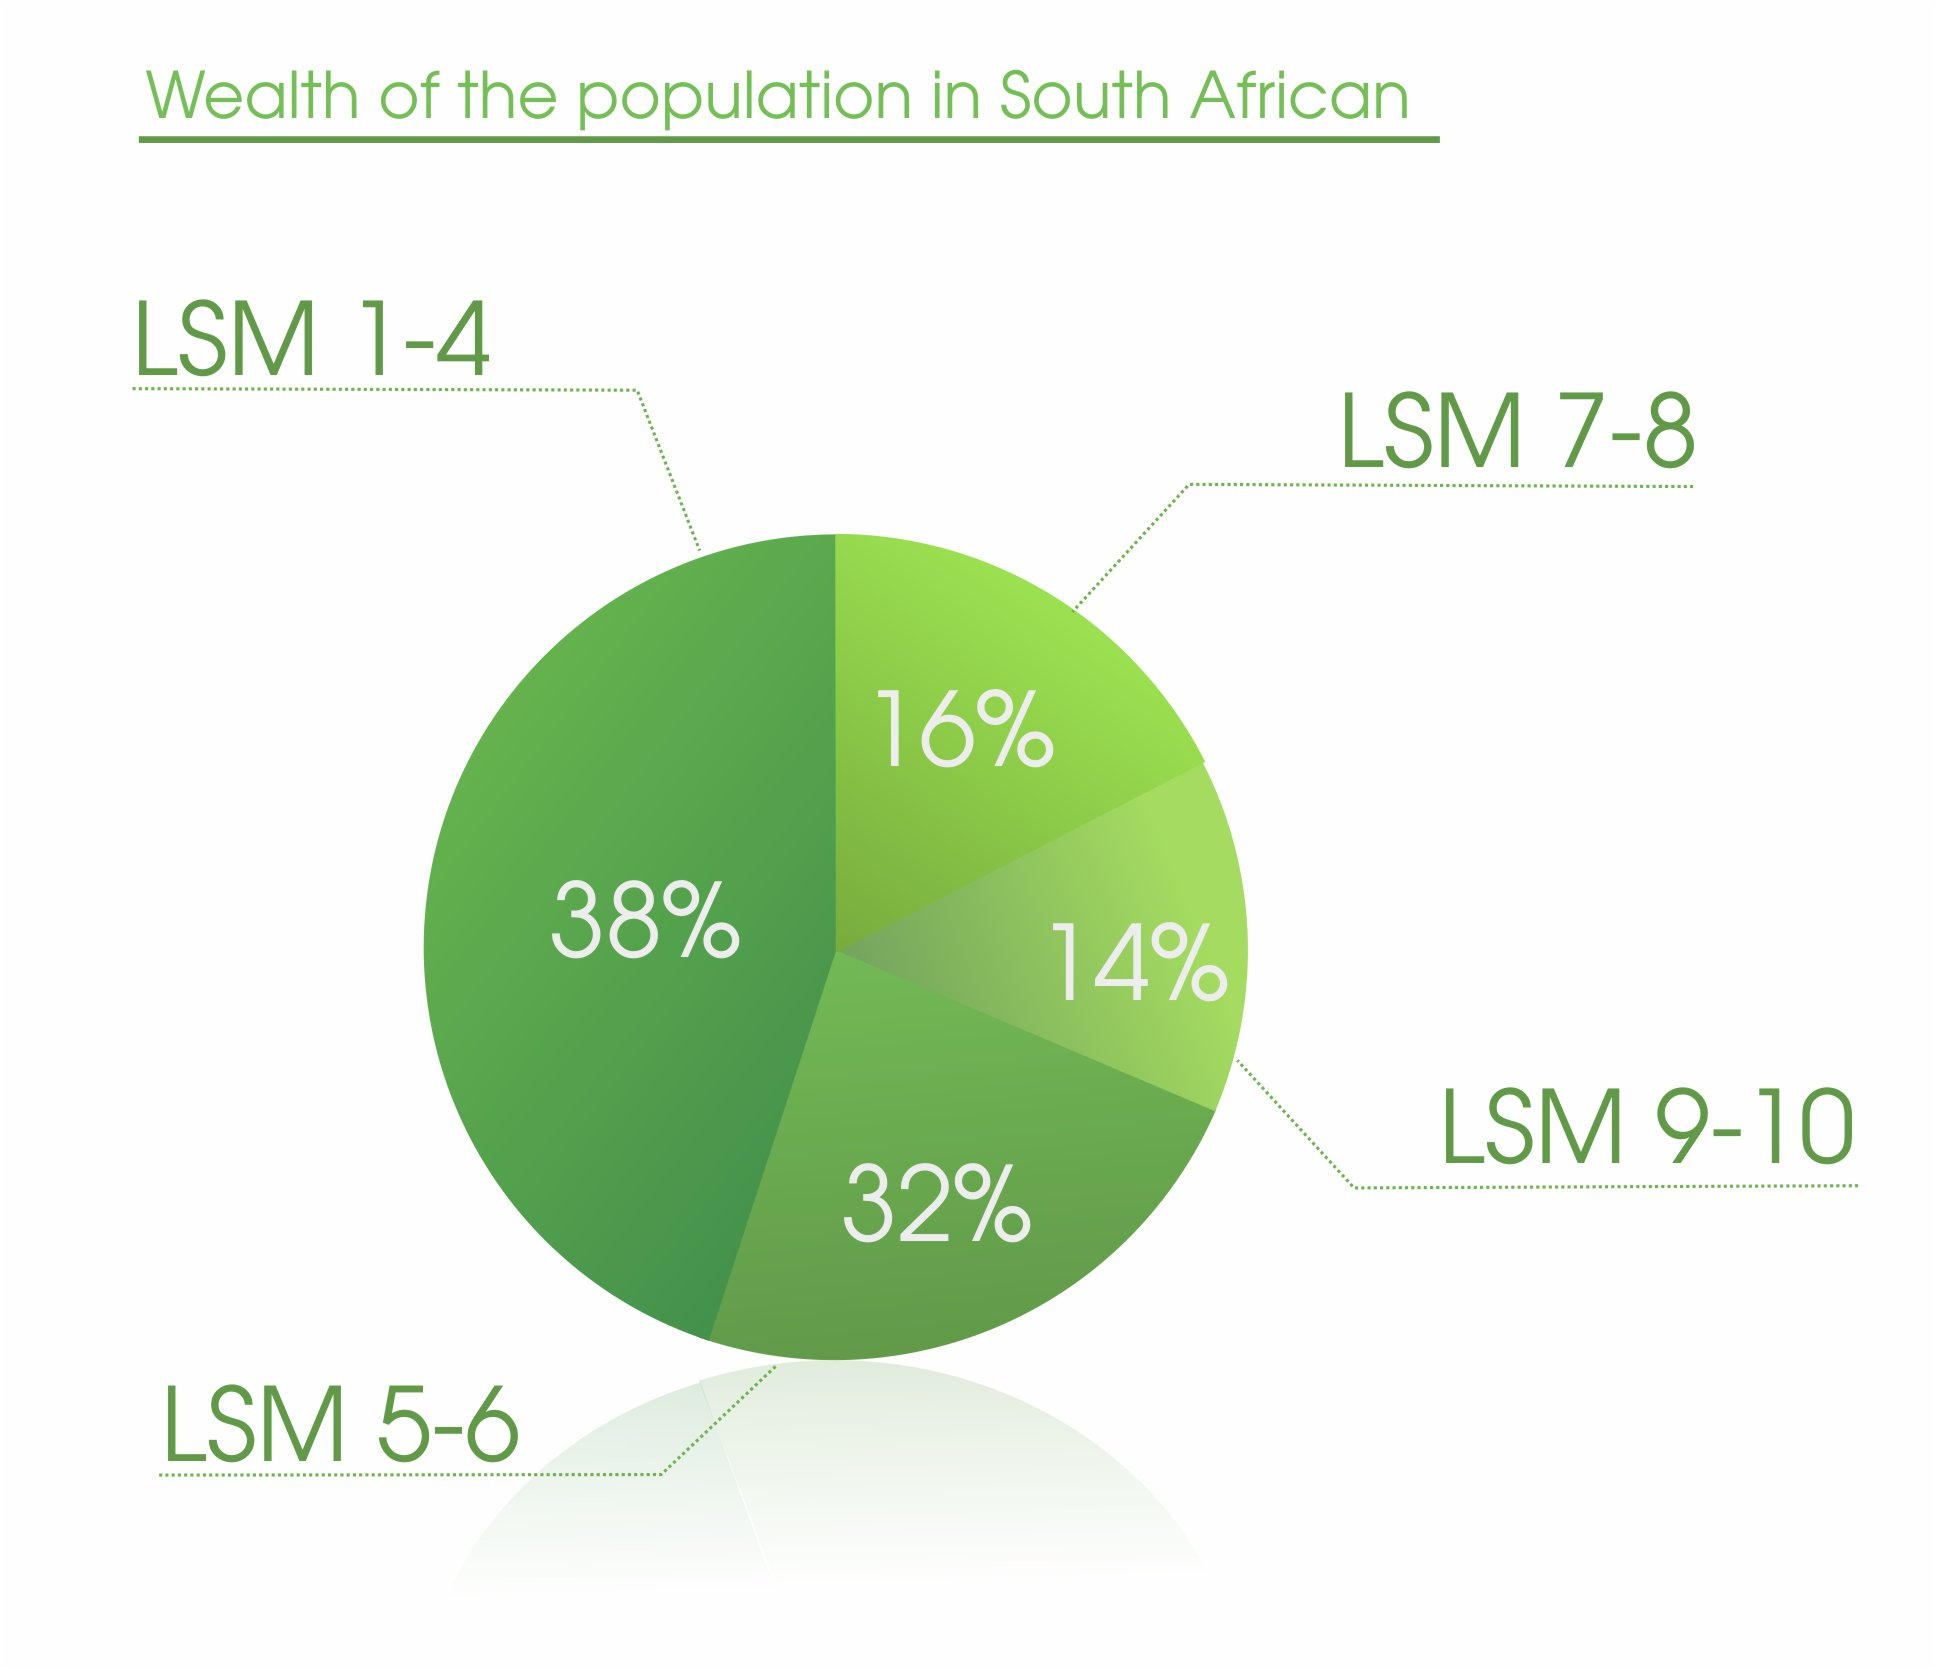 wealth-of-the-population-in-sa